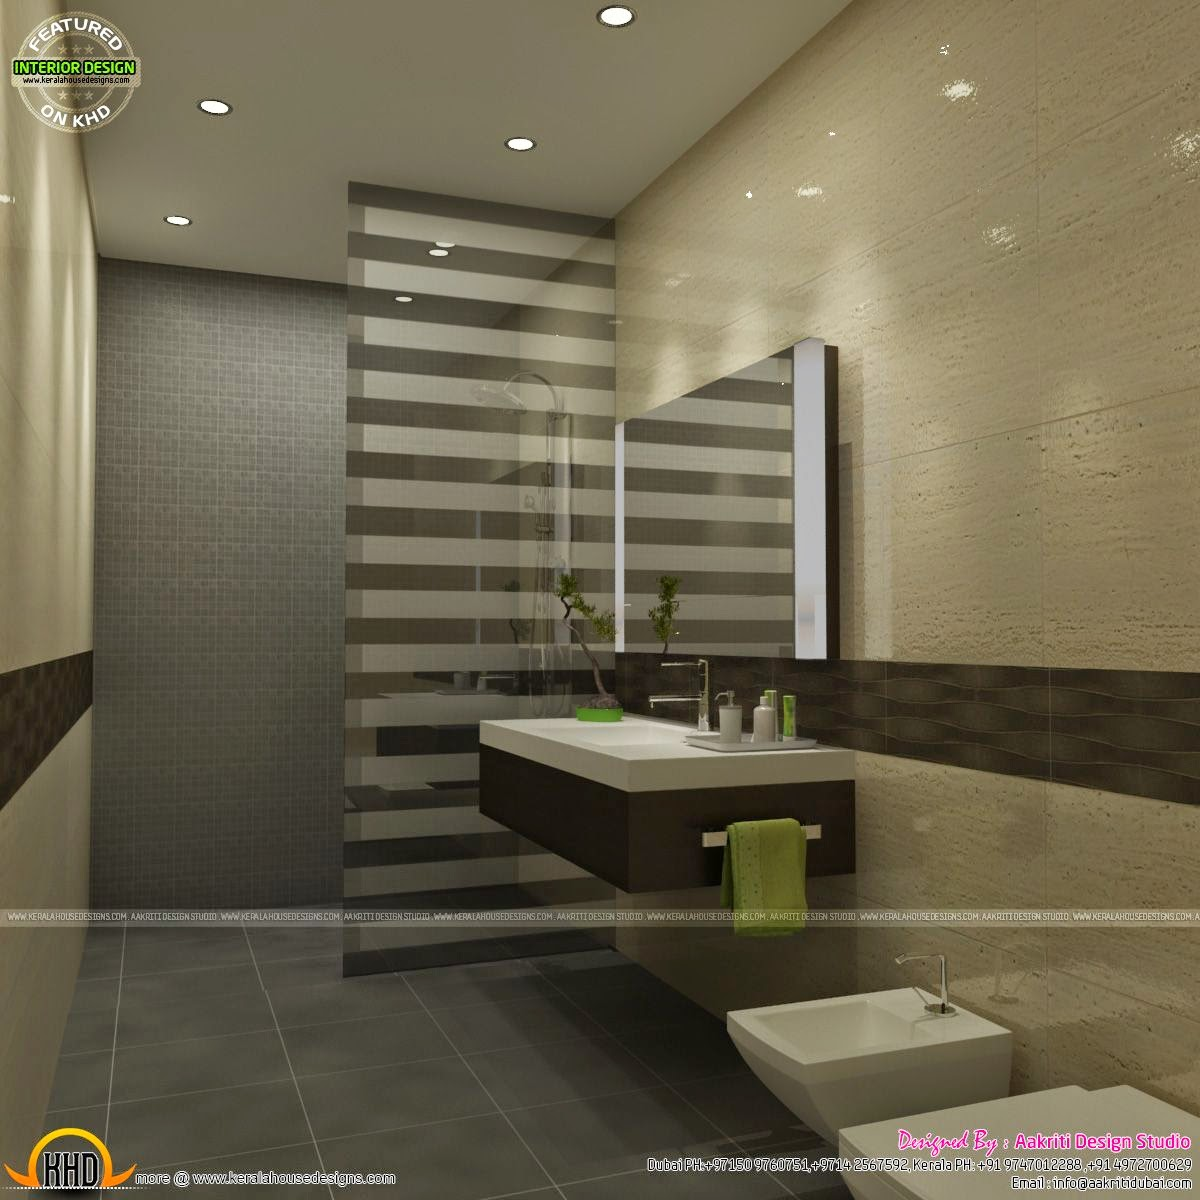 Awesome interiors of living kitchen and bathroom kerala for Bathroom designs in kerala